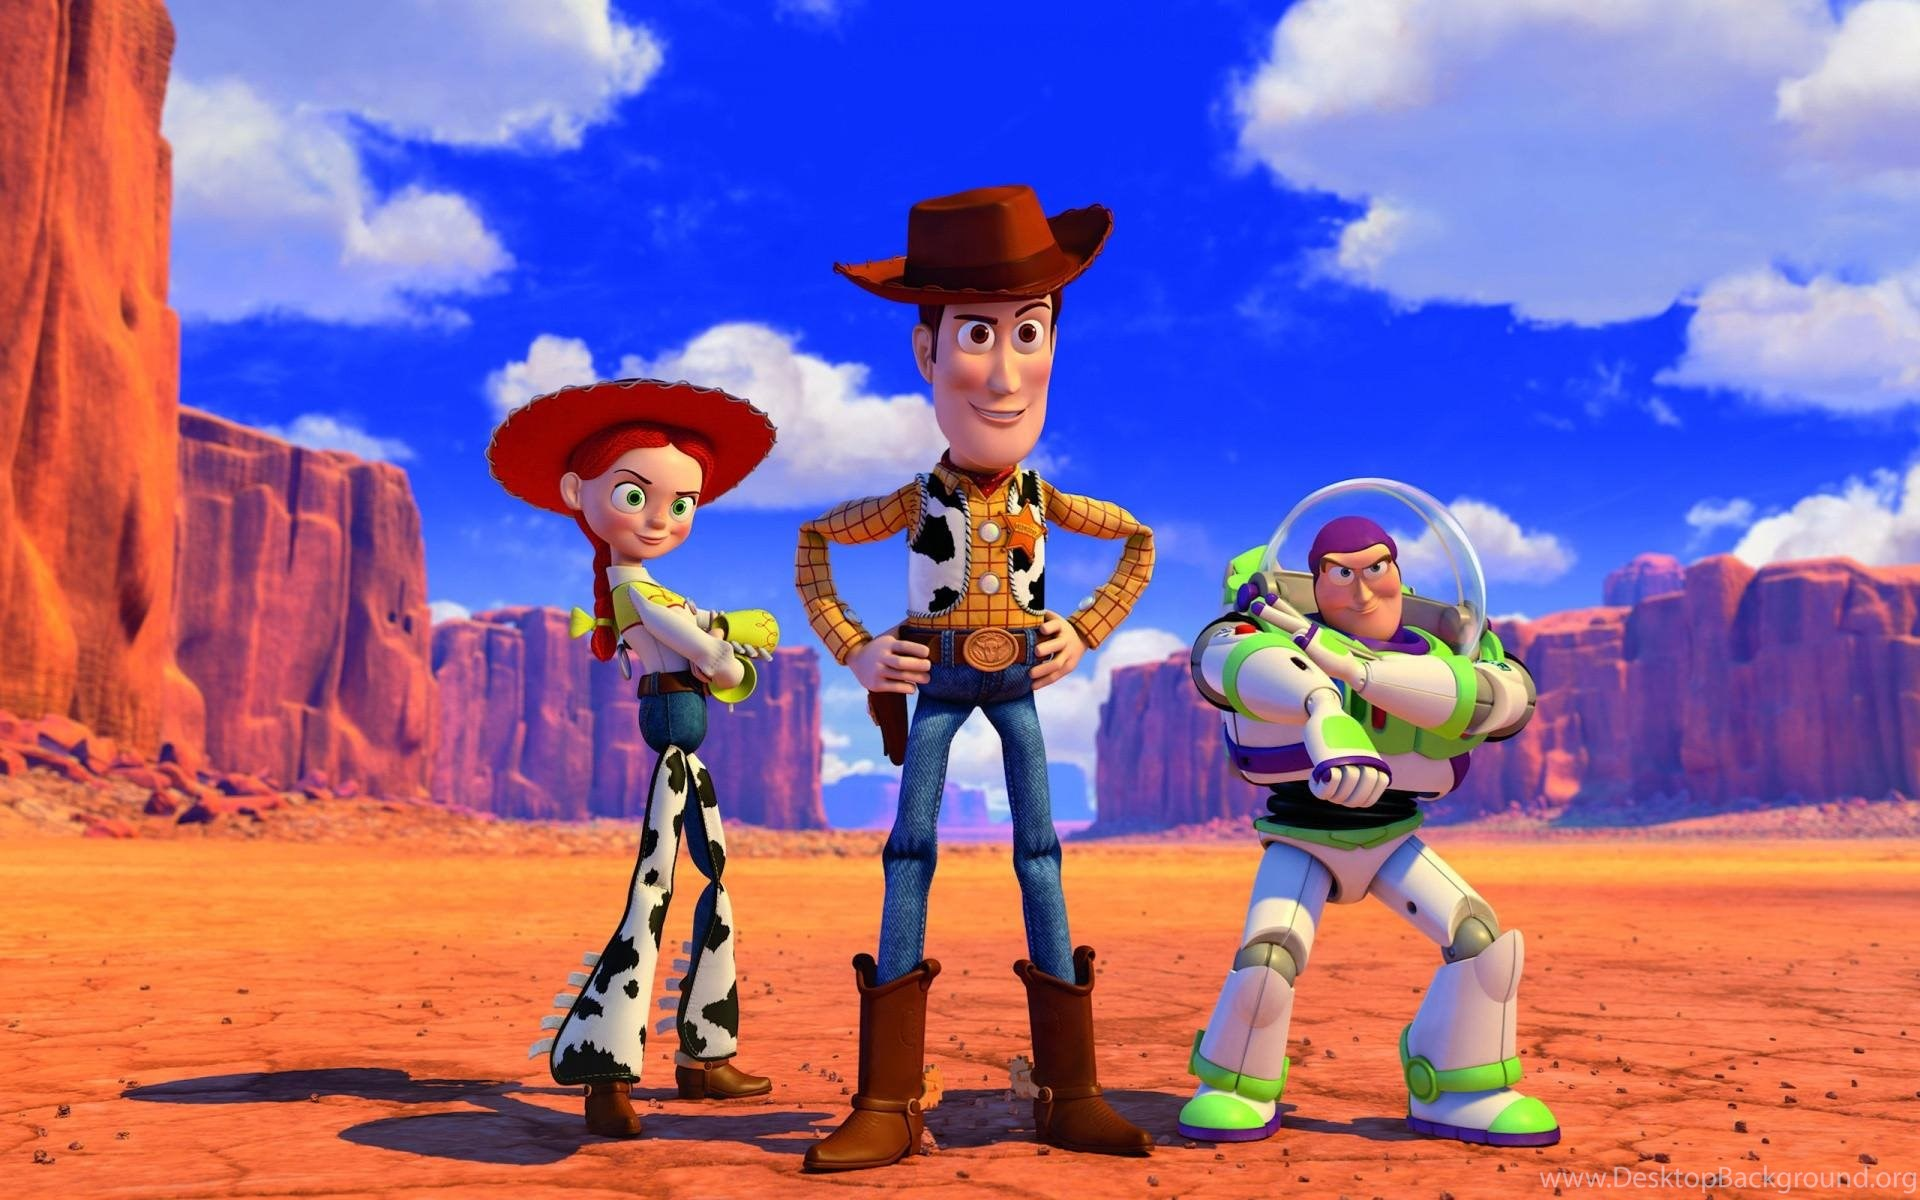 toy story 3 hd wallpapers desktop background